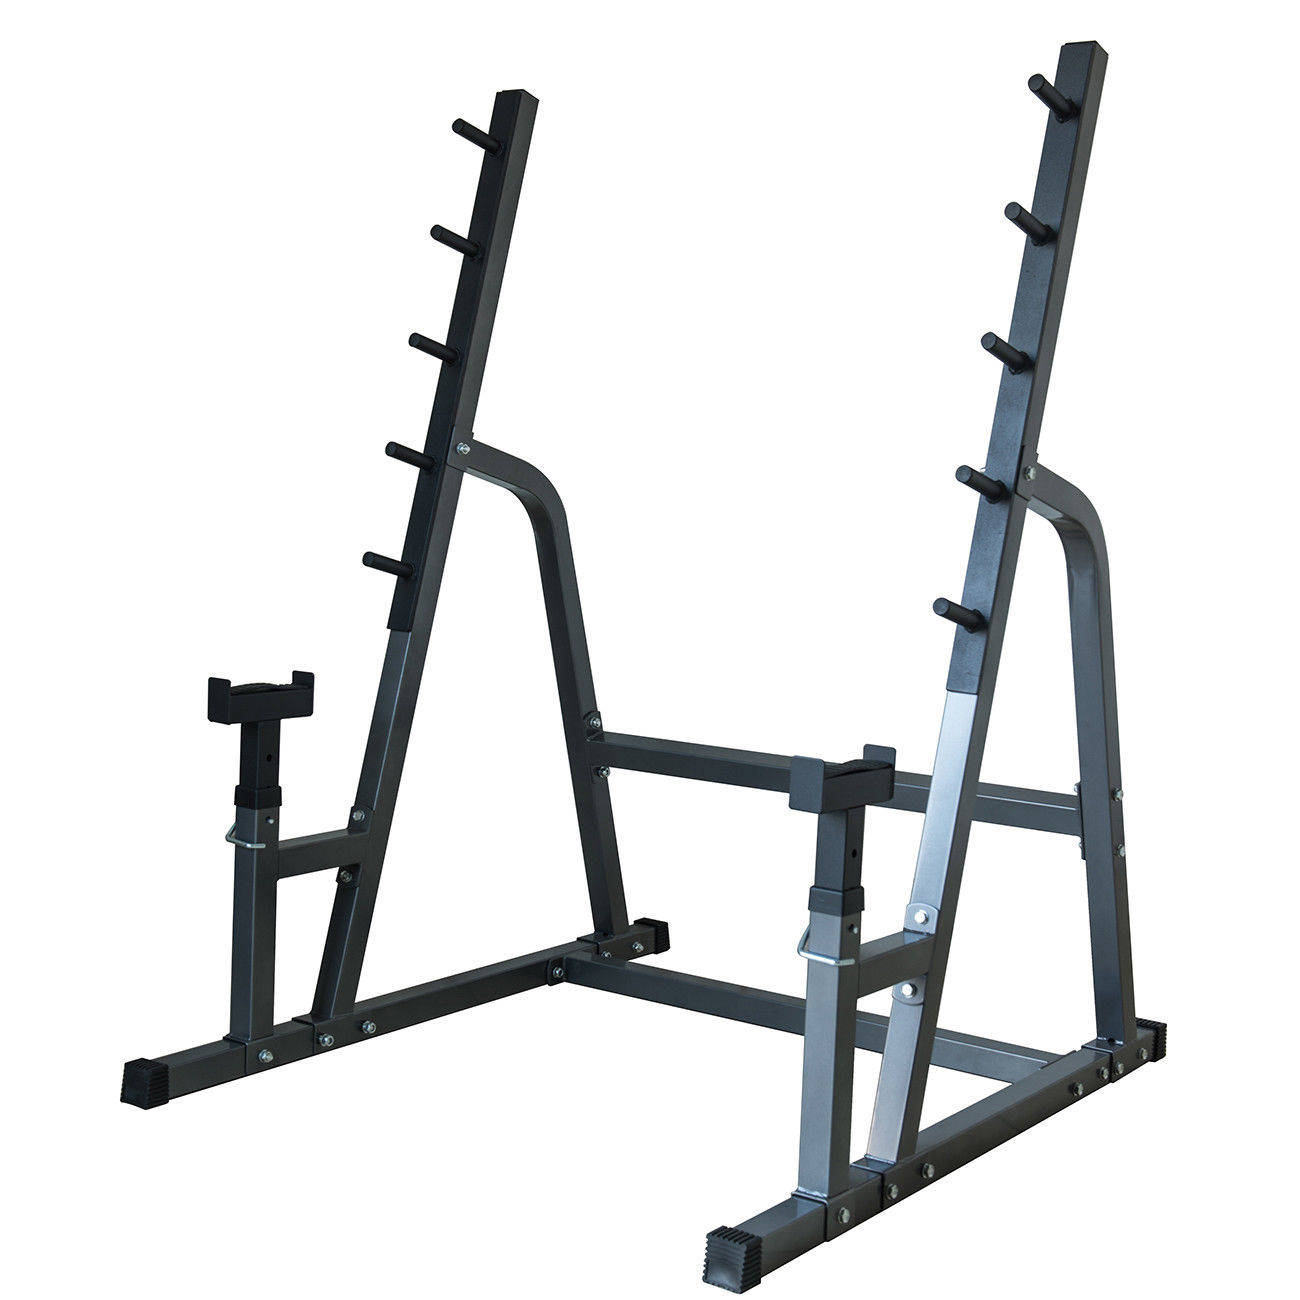 Deluxe Squat Bench Combo Rack Fitness Exercise Equipment Safety Function Set Work Out Wear